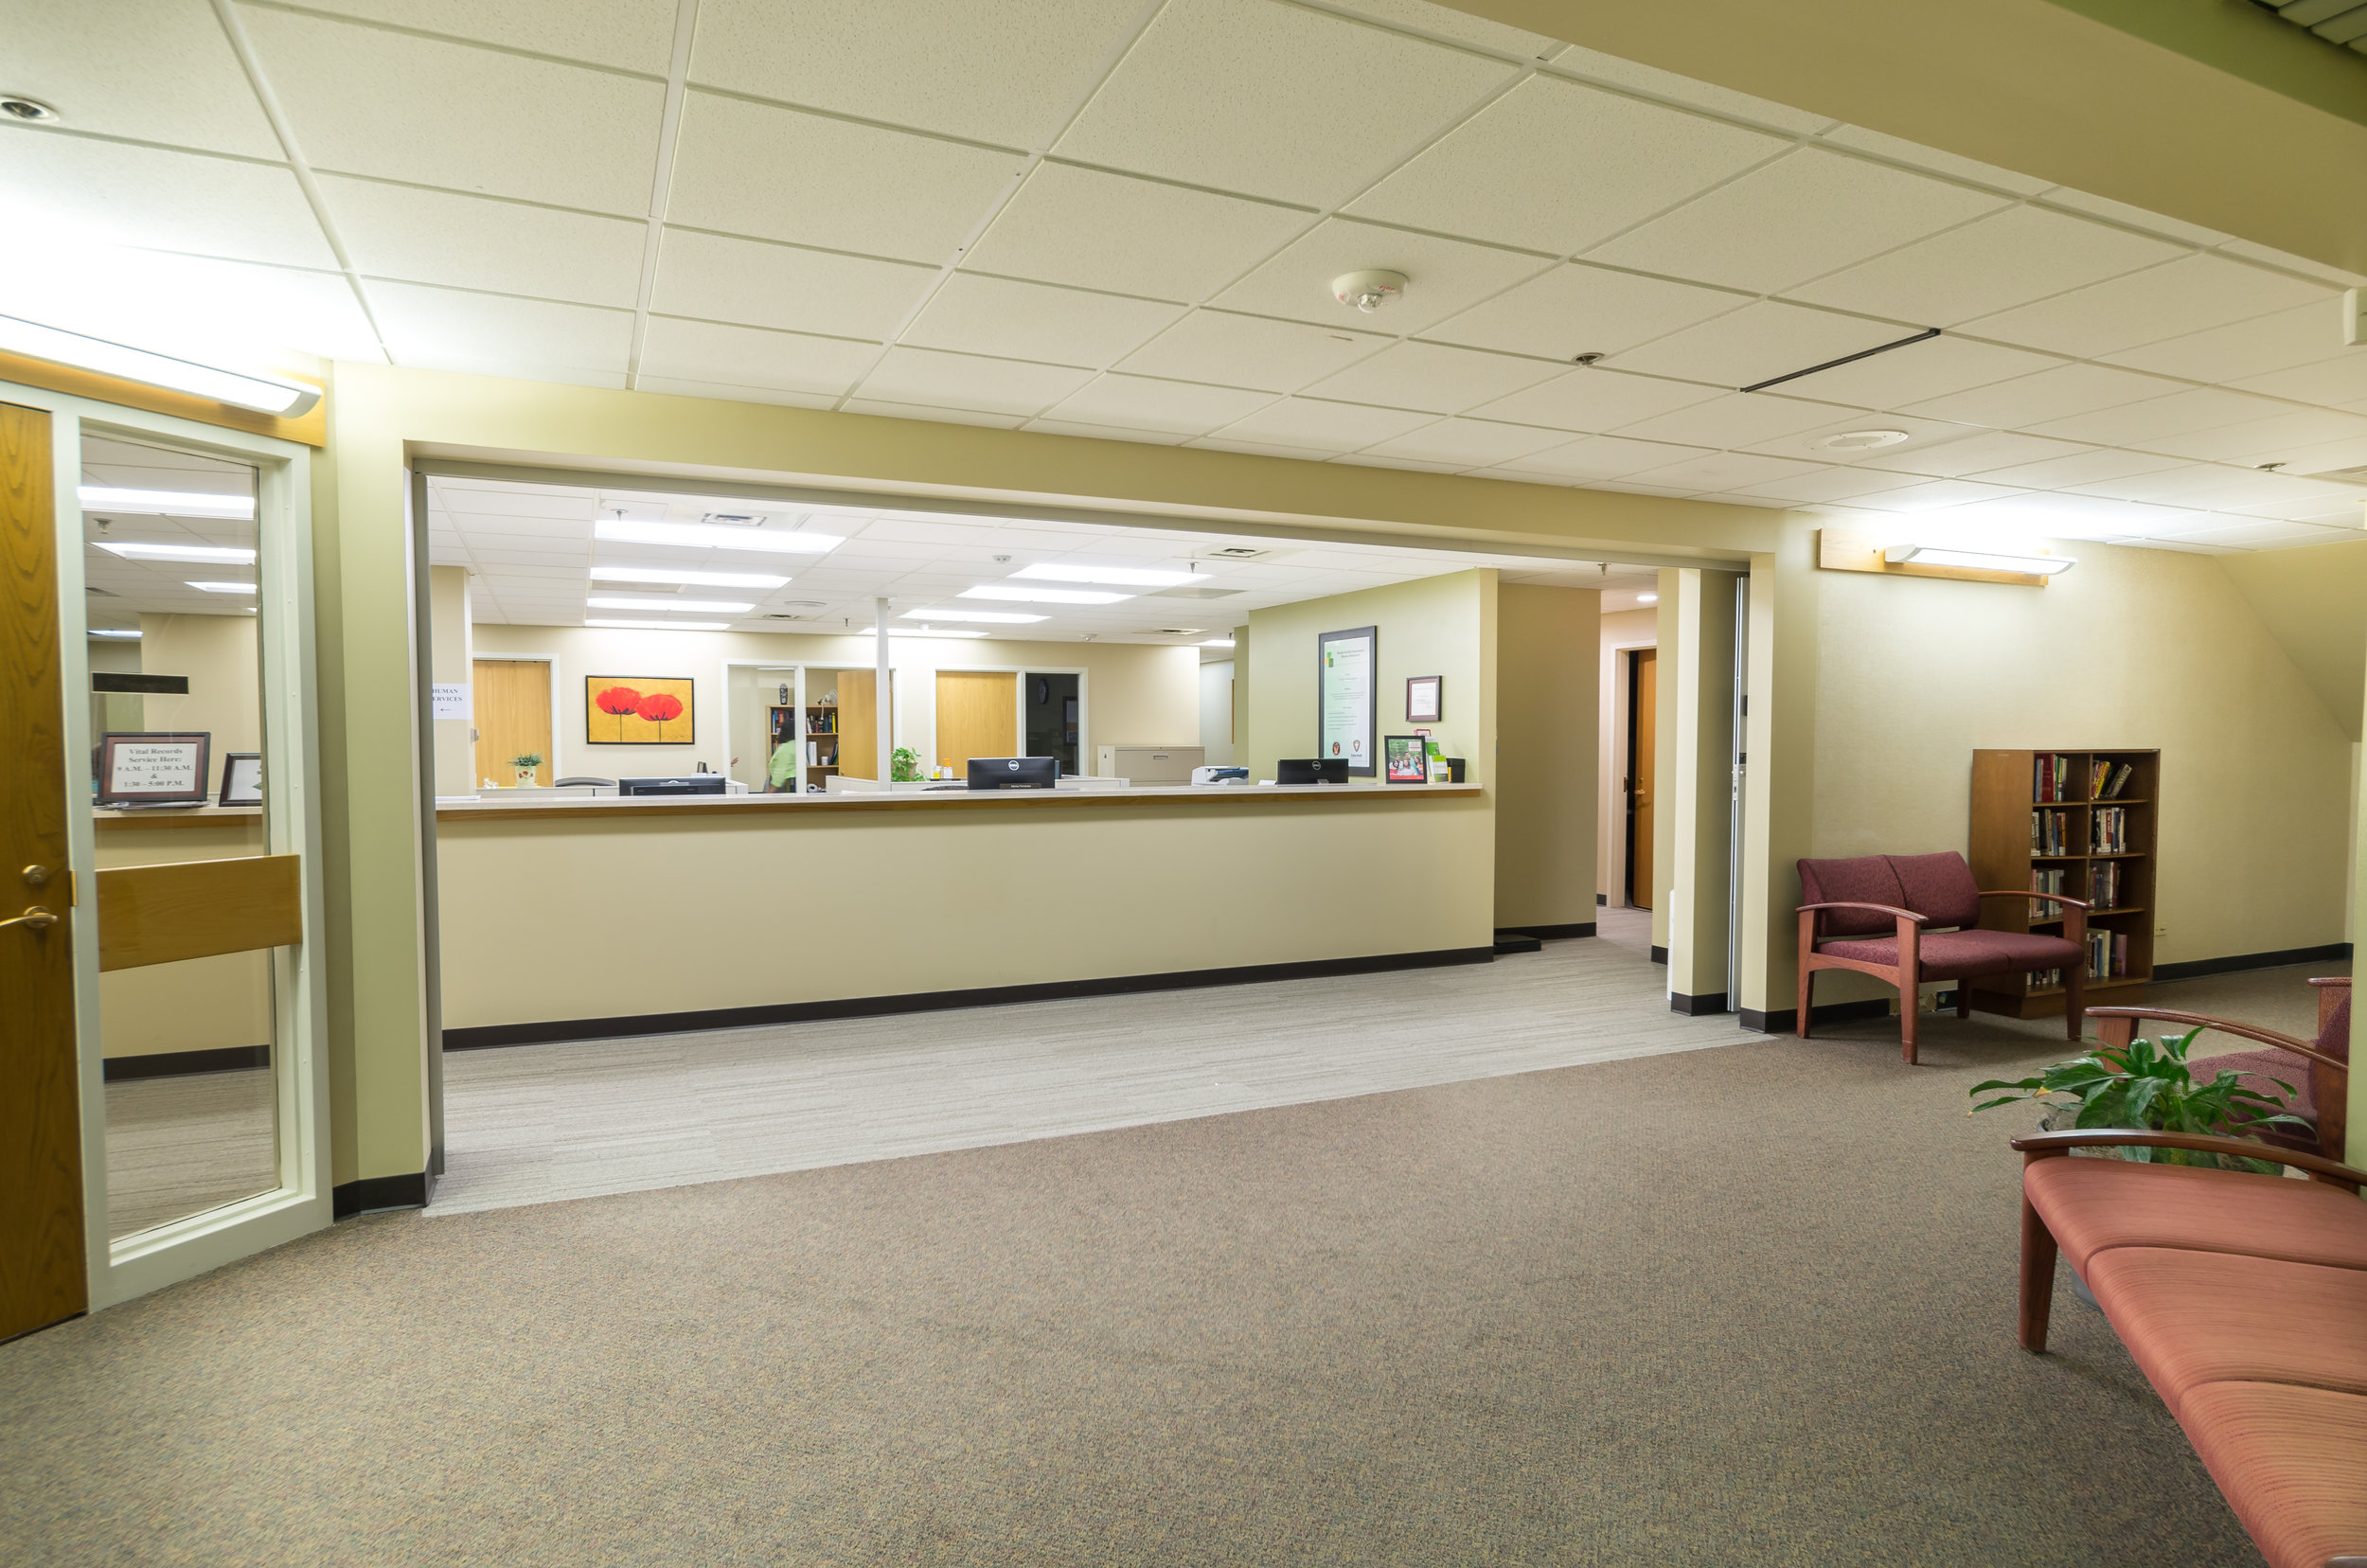 Skokie_Village_Hall-2685.jpg